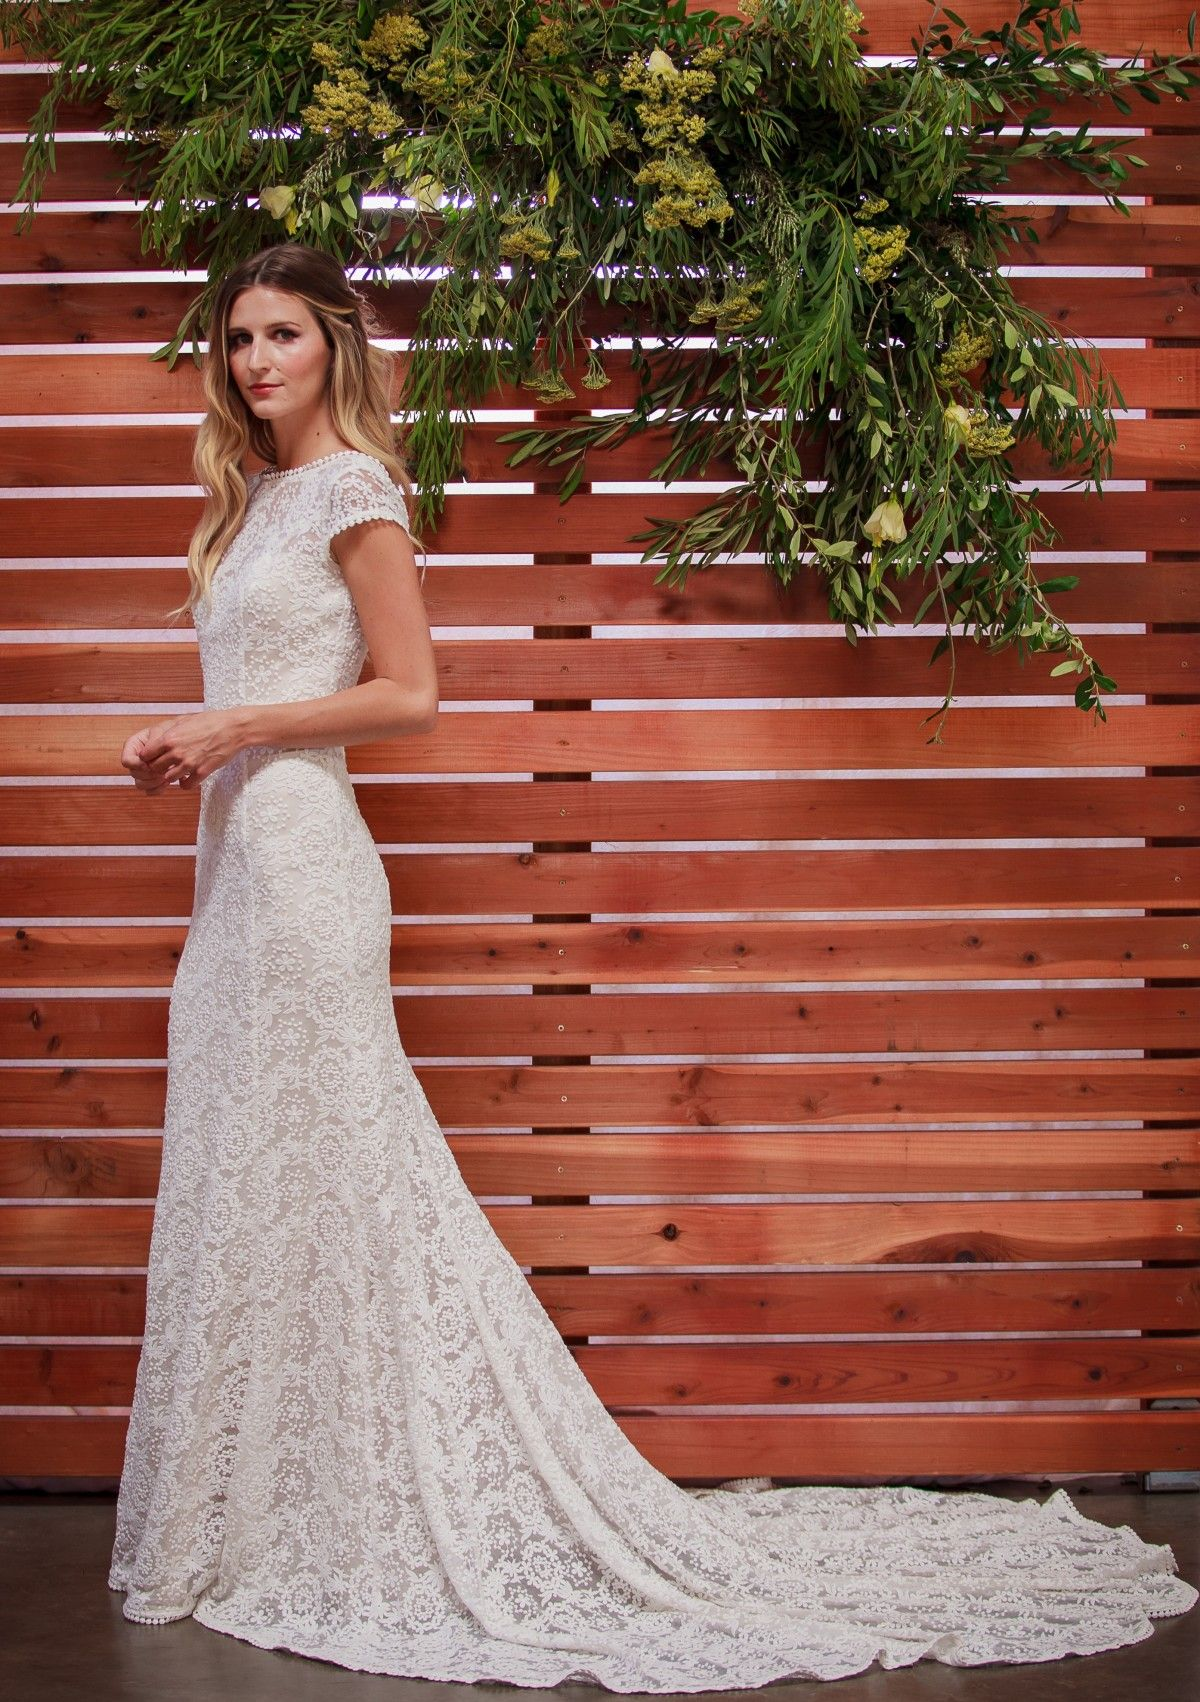 Nellia lace gown embroidered lace lace wedding dresses and lace